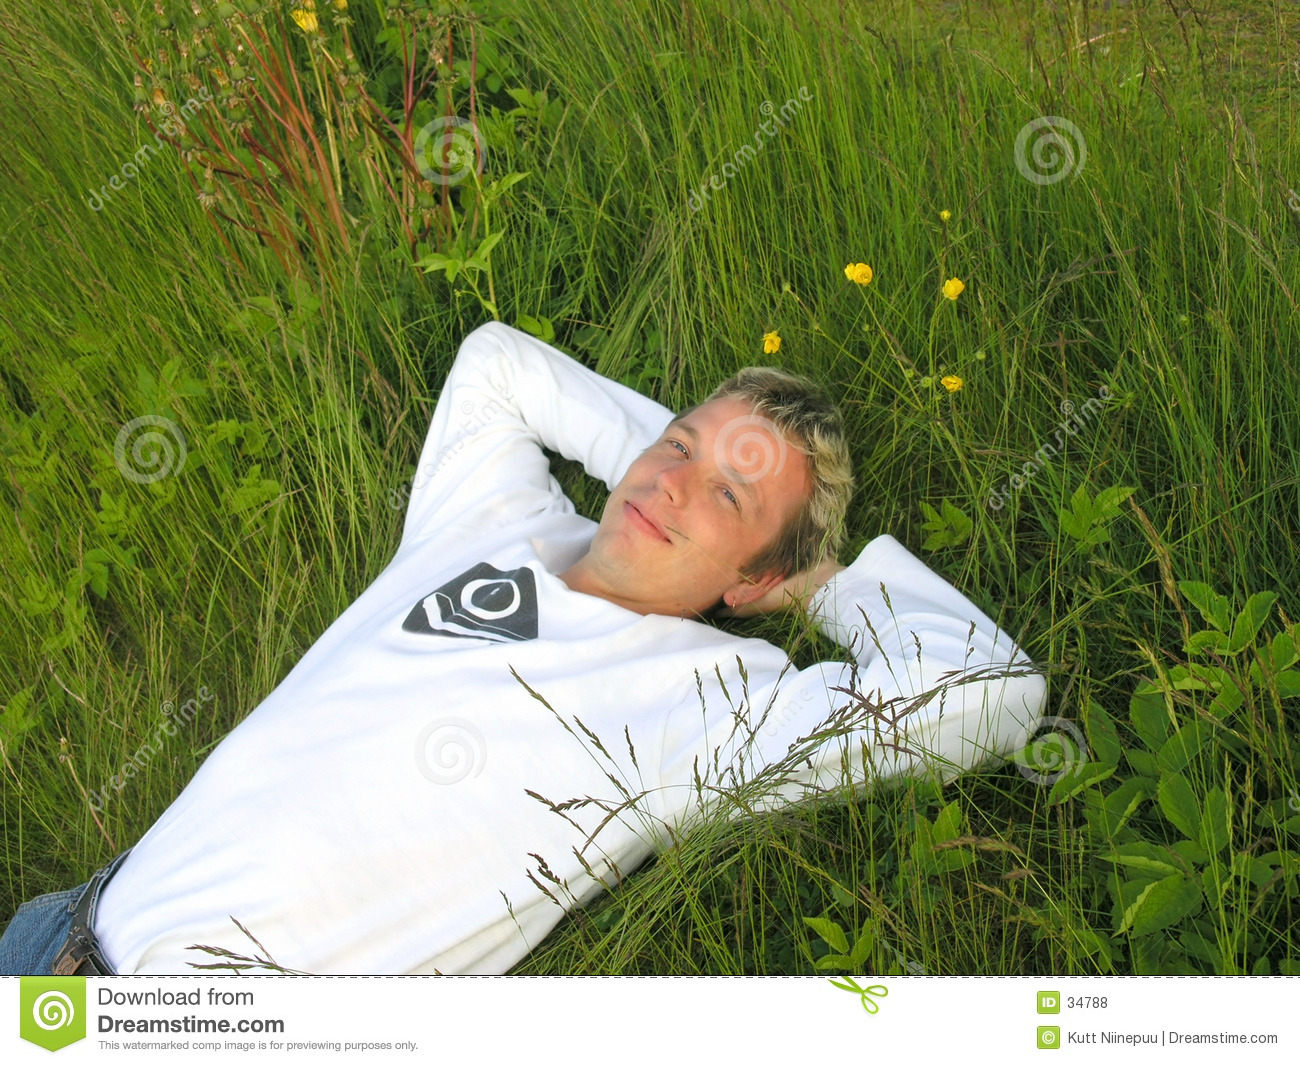 Man in the grass 2